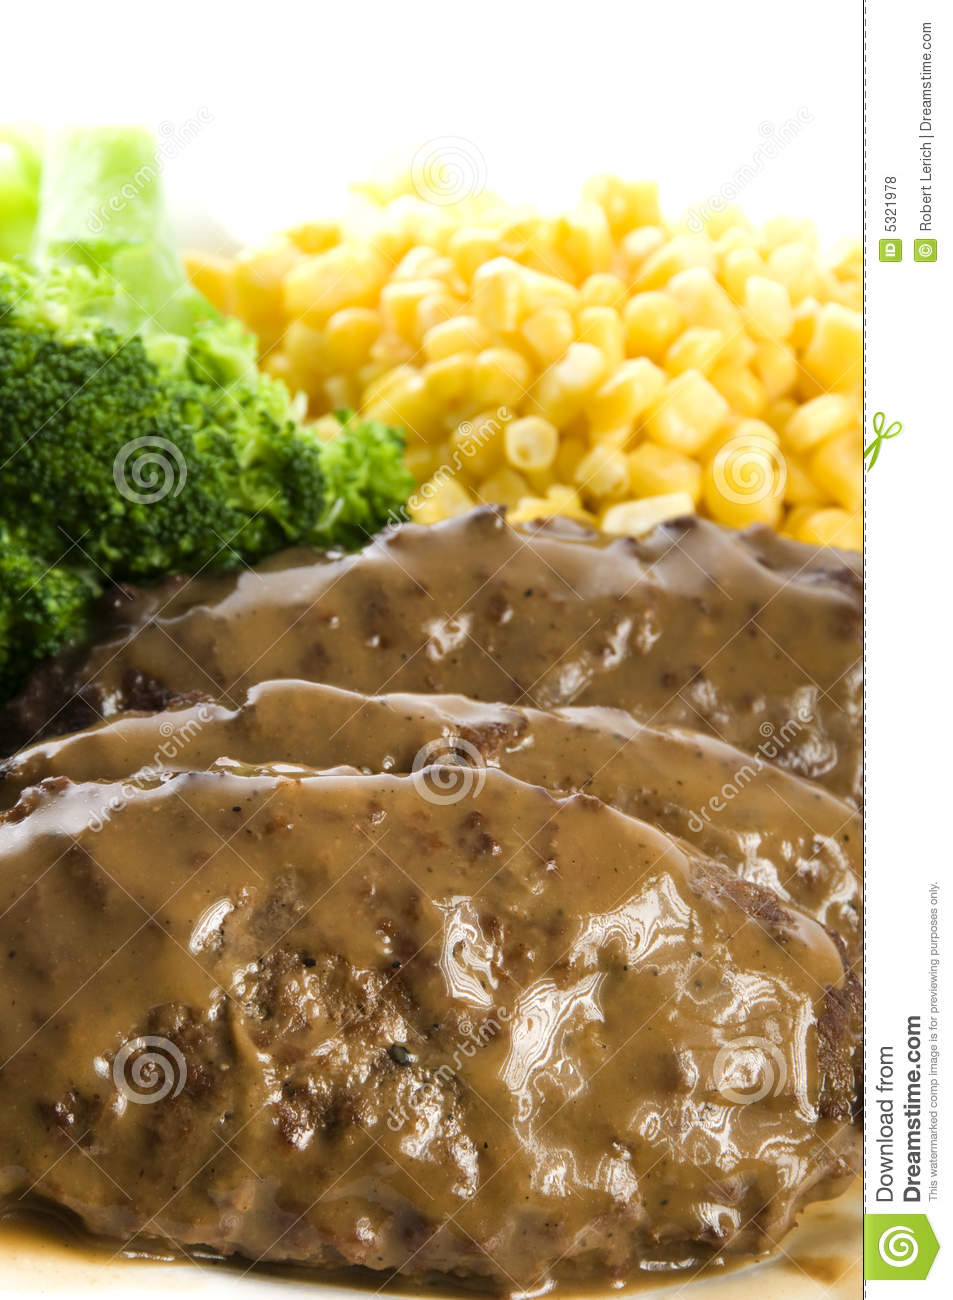 Salisbury steak clipart.